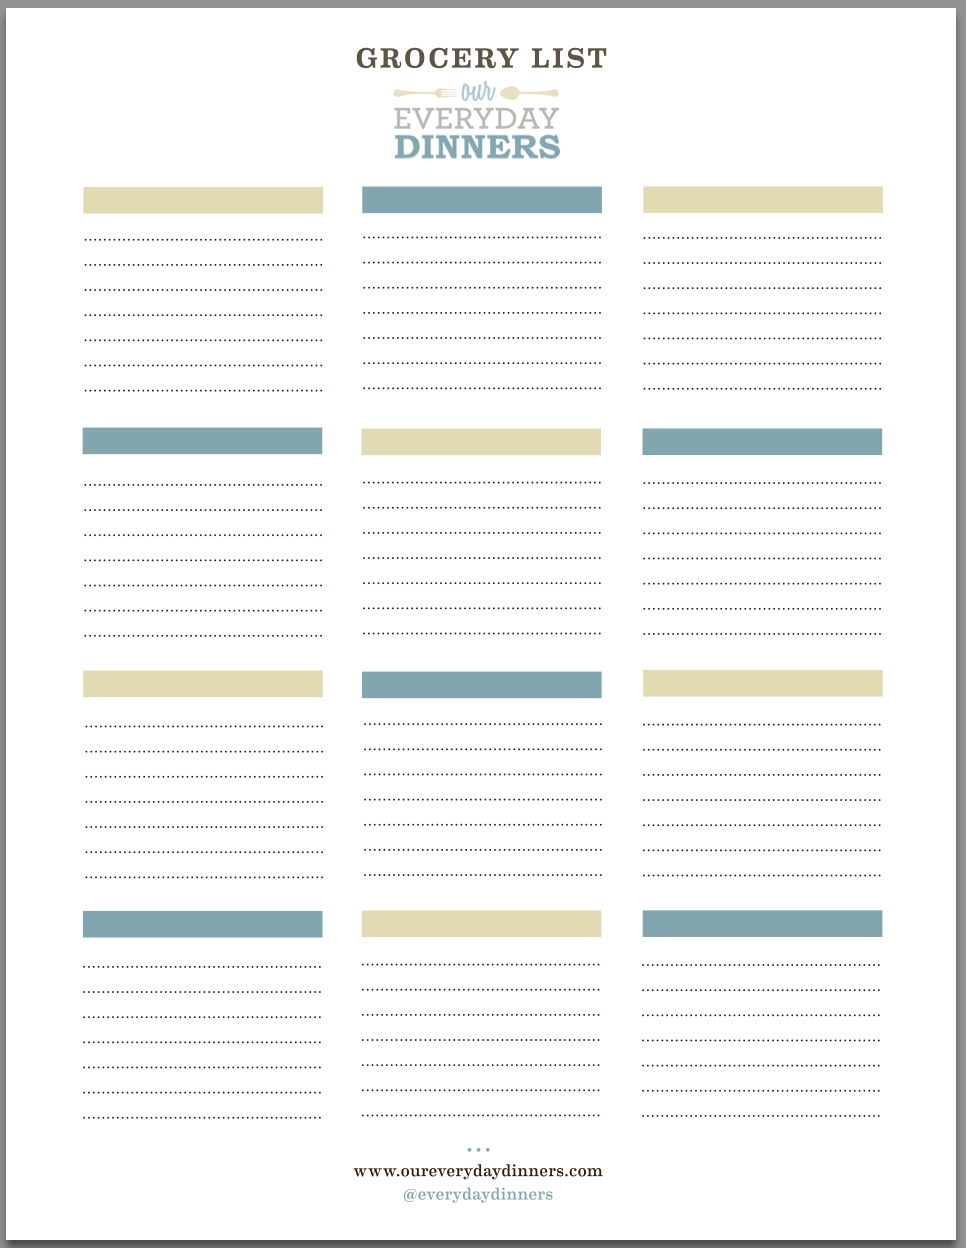 Grocery List Printable| Our Everyday Dinners  Grocery List Template Printable